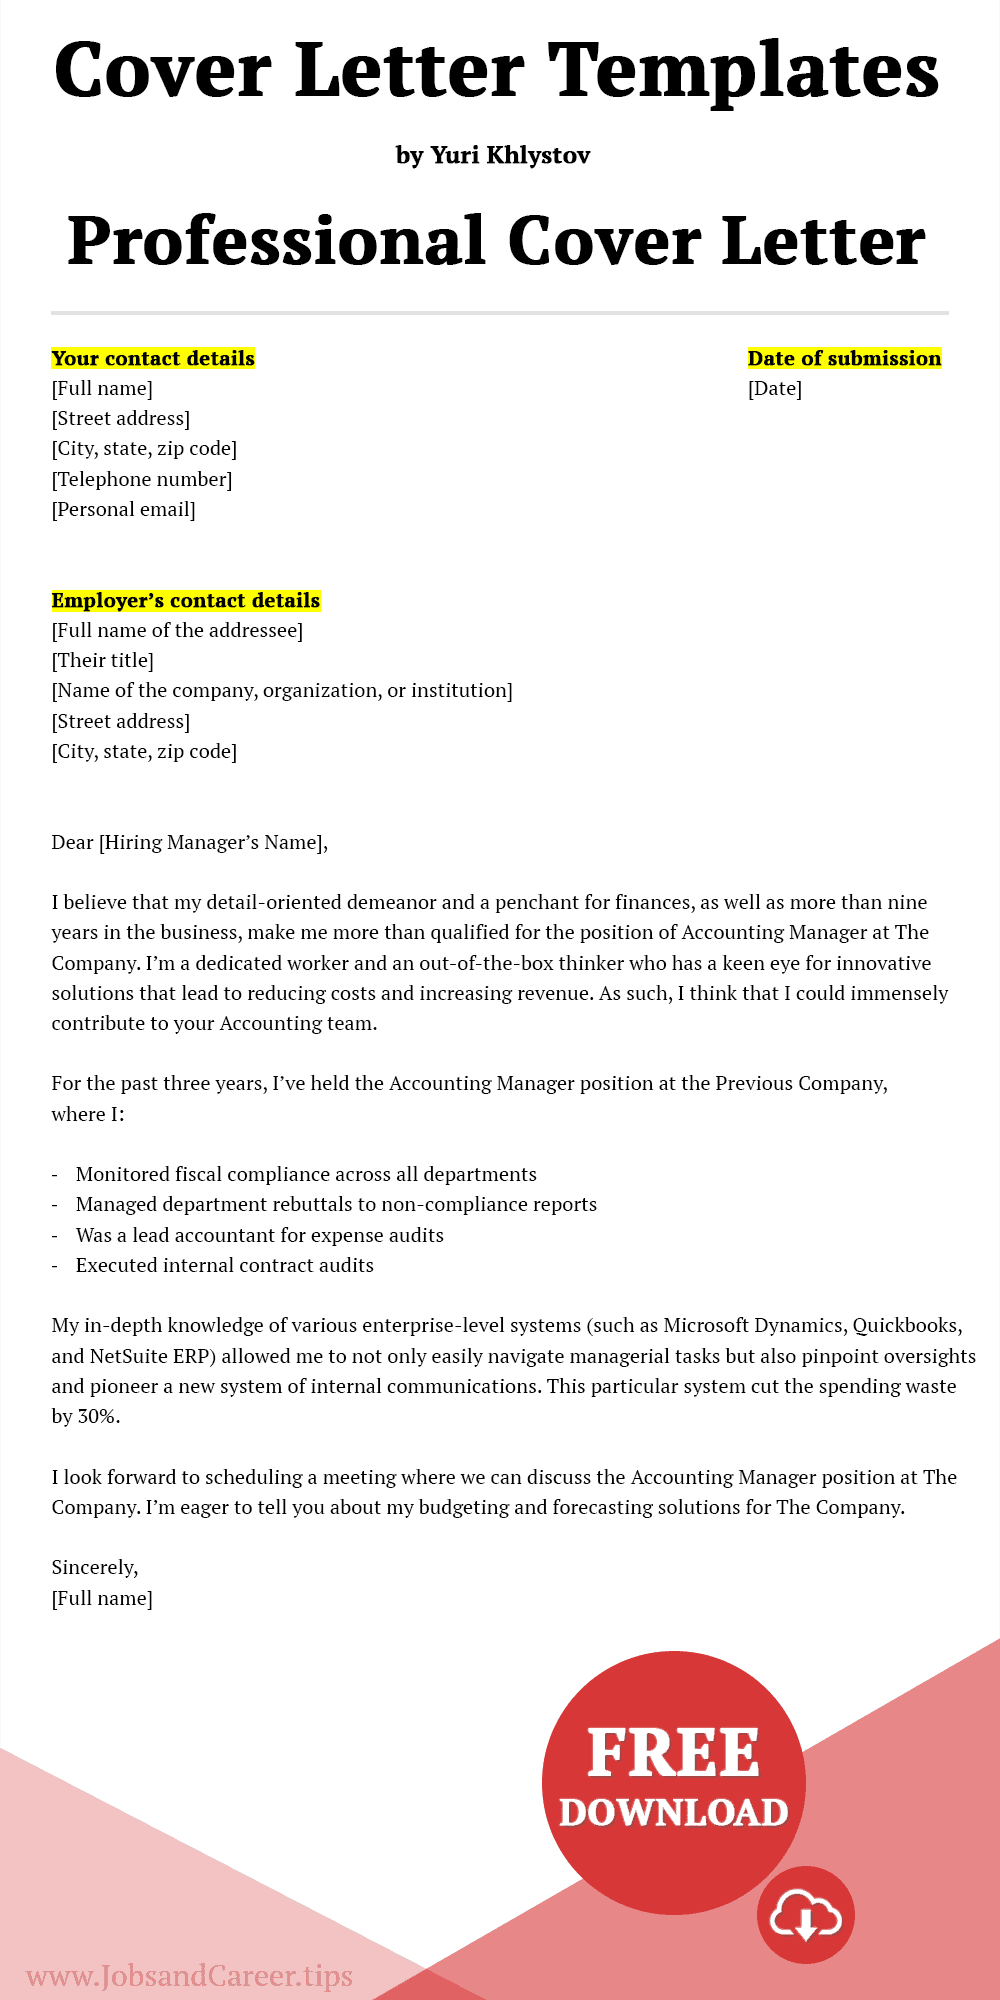 Click to download the professional cover letter template